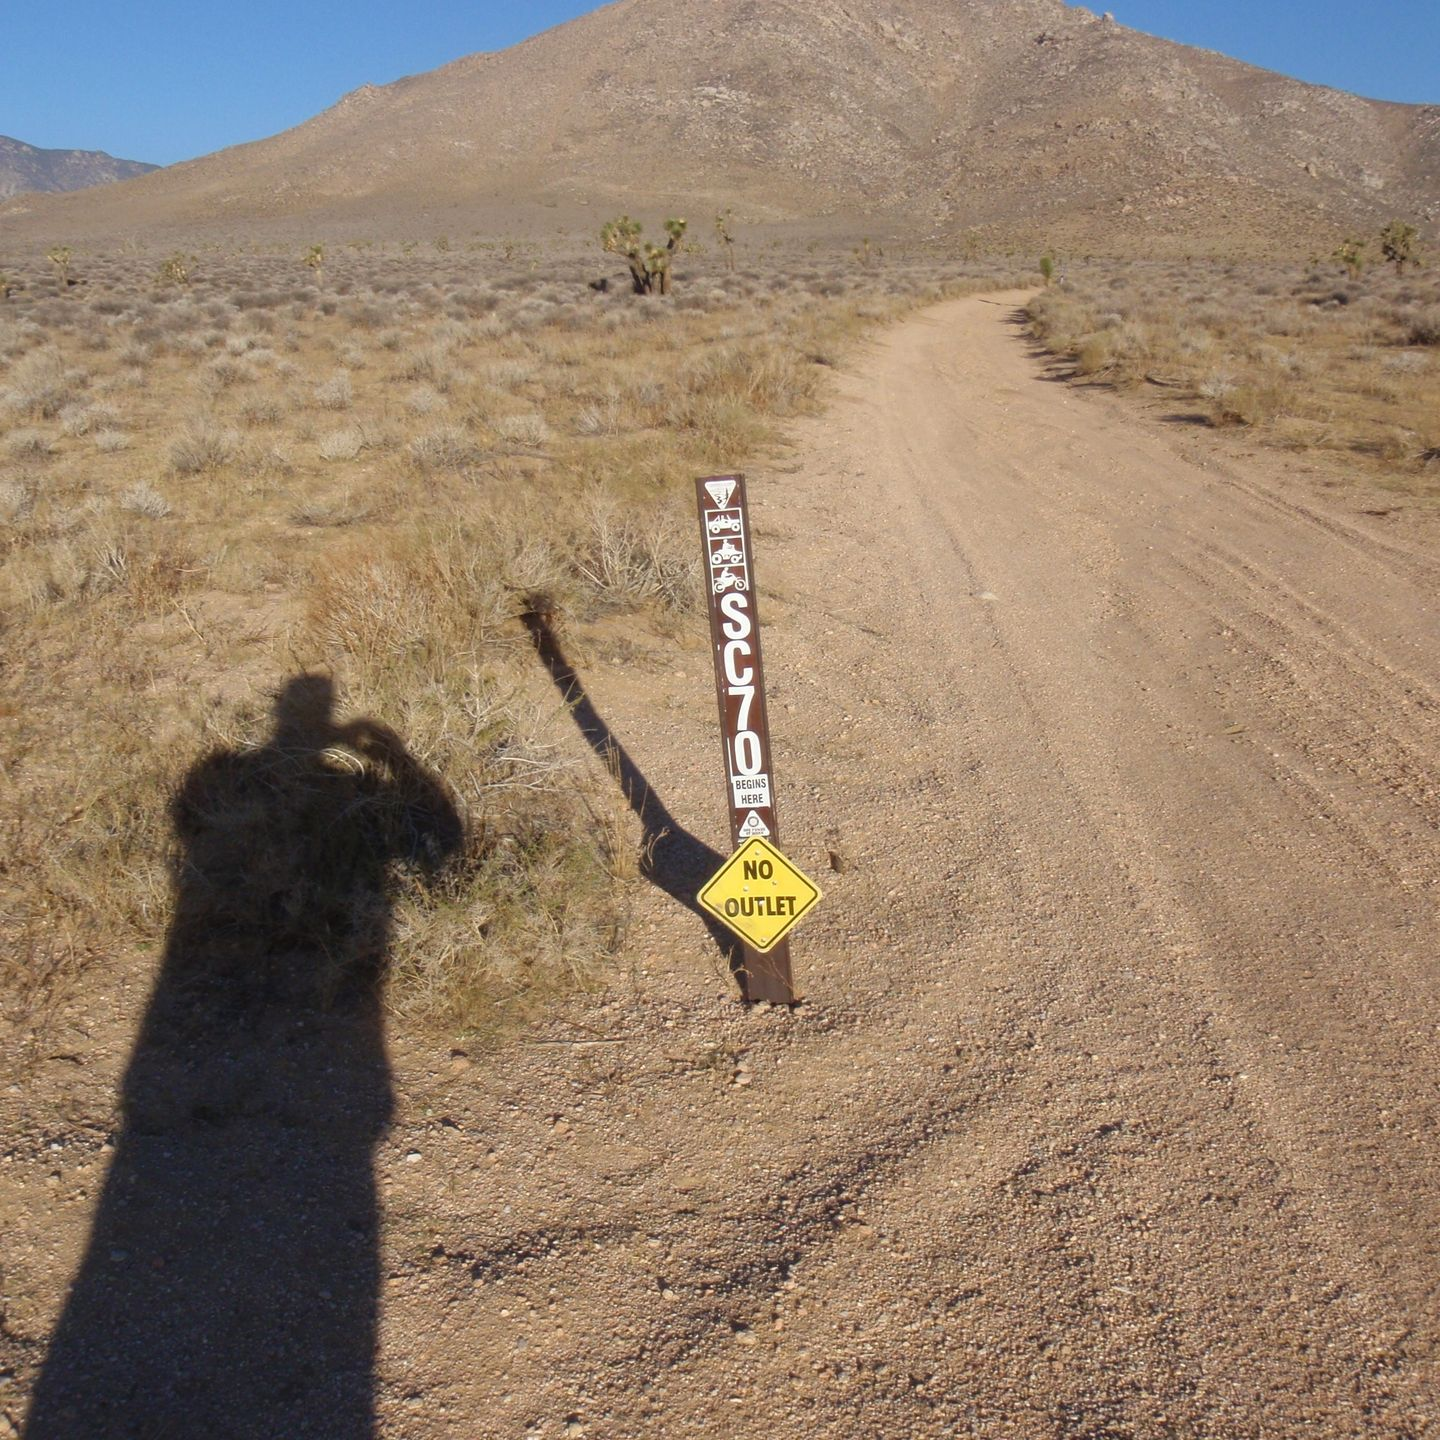 SC65 - McIvers Cabin - Waypoint 9: Intersection with SC70